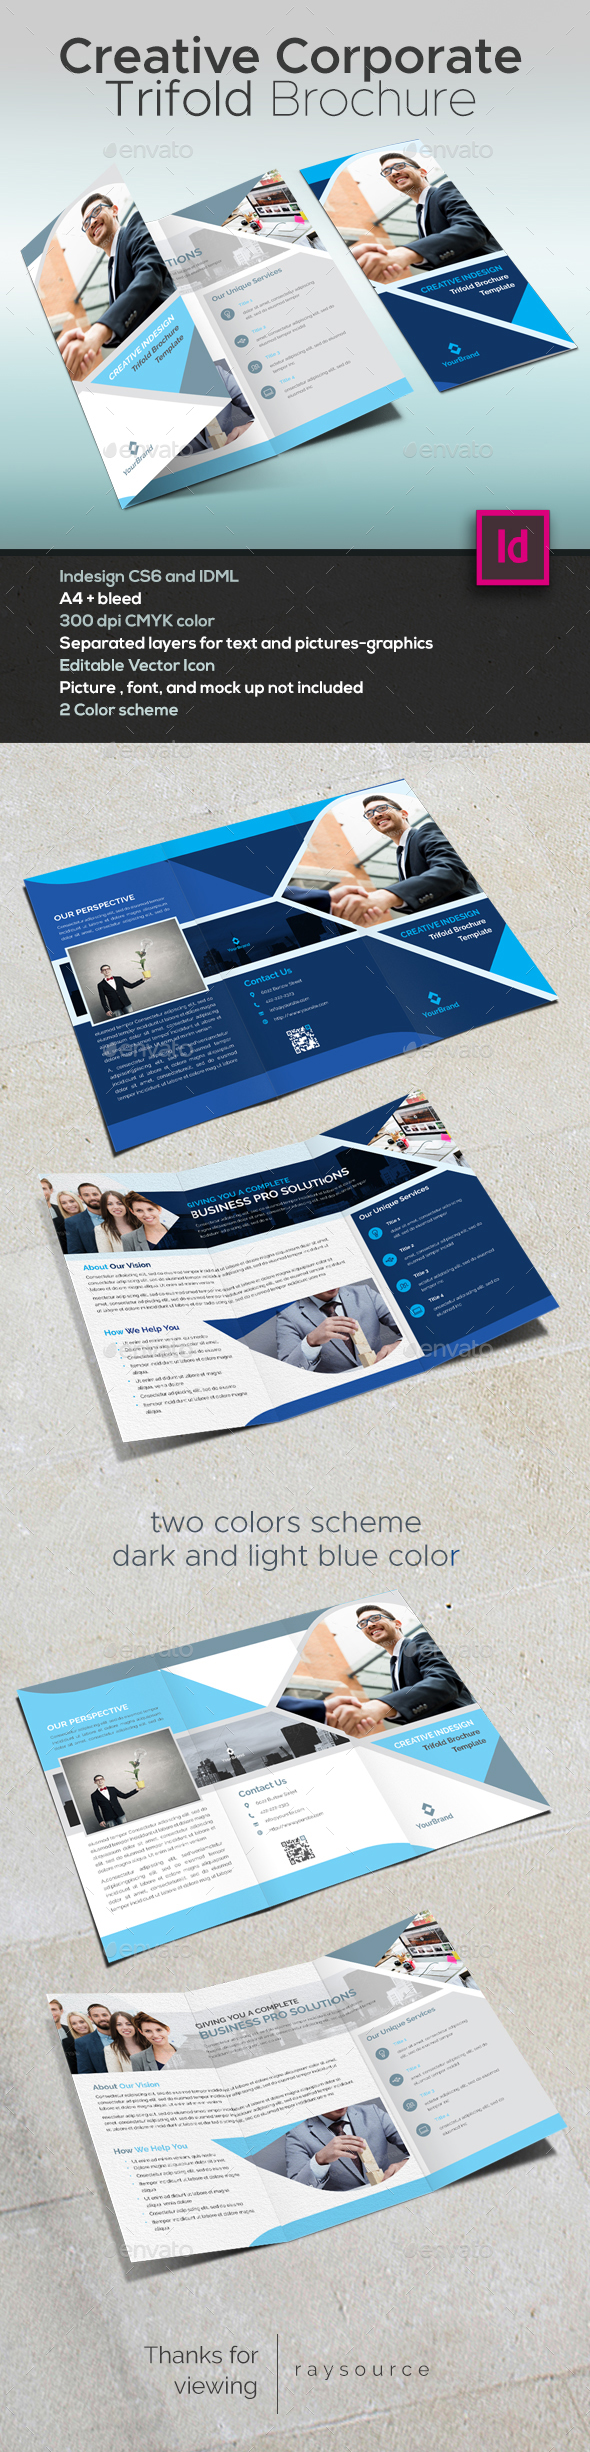 Creative Corporate Trifold Brochure - Brochures Print Templates